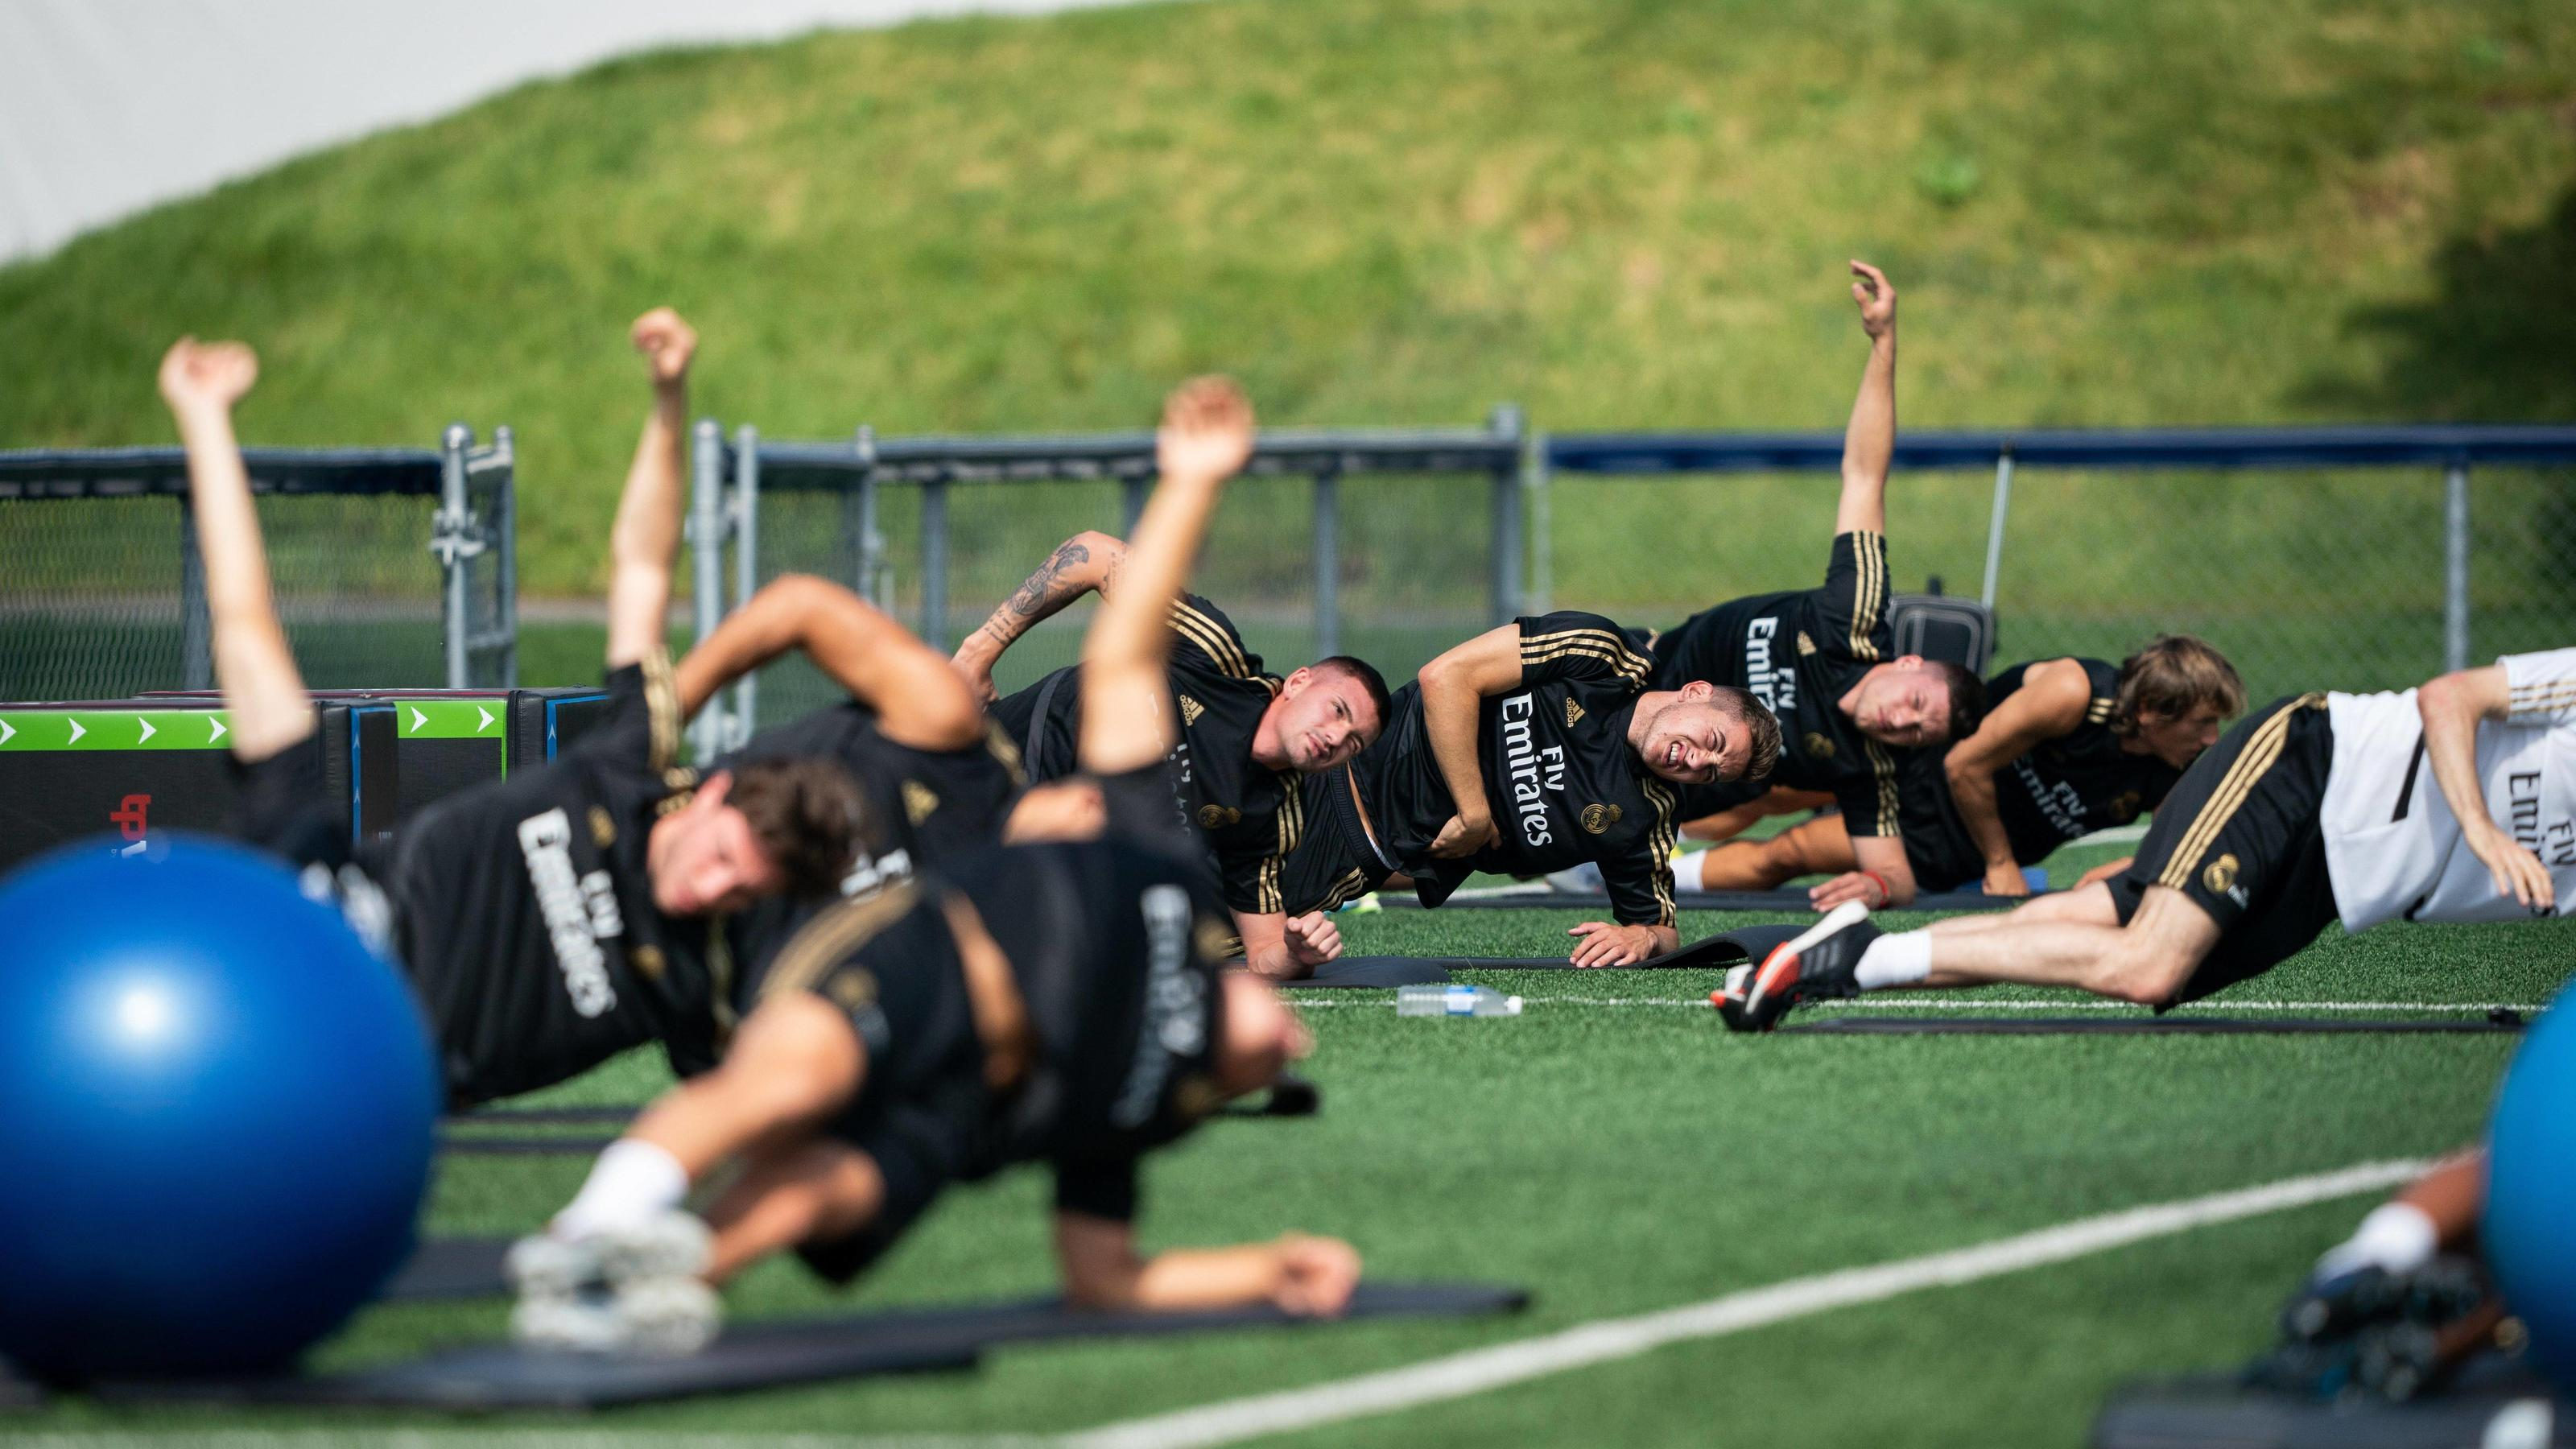 Real Madrid s players during a training session this Saturday, July 13, at the Montreal Impact Training Facility, in Montreal, Canada. Real Madrid is conducting pre-season in Canada. Real Madrid s training session in Montreal !ACHTUNG: NUR REDAKTIONE